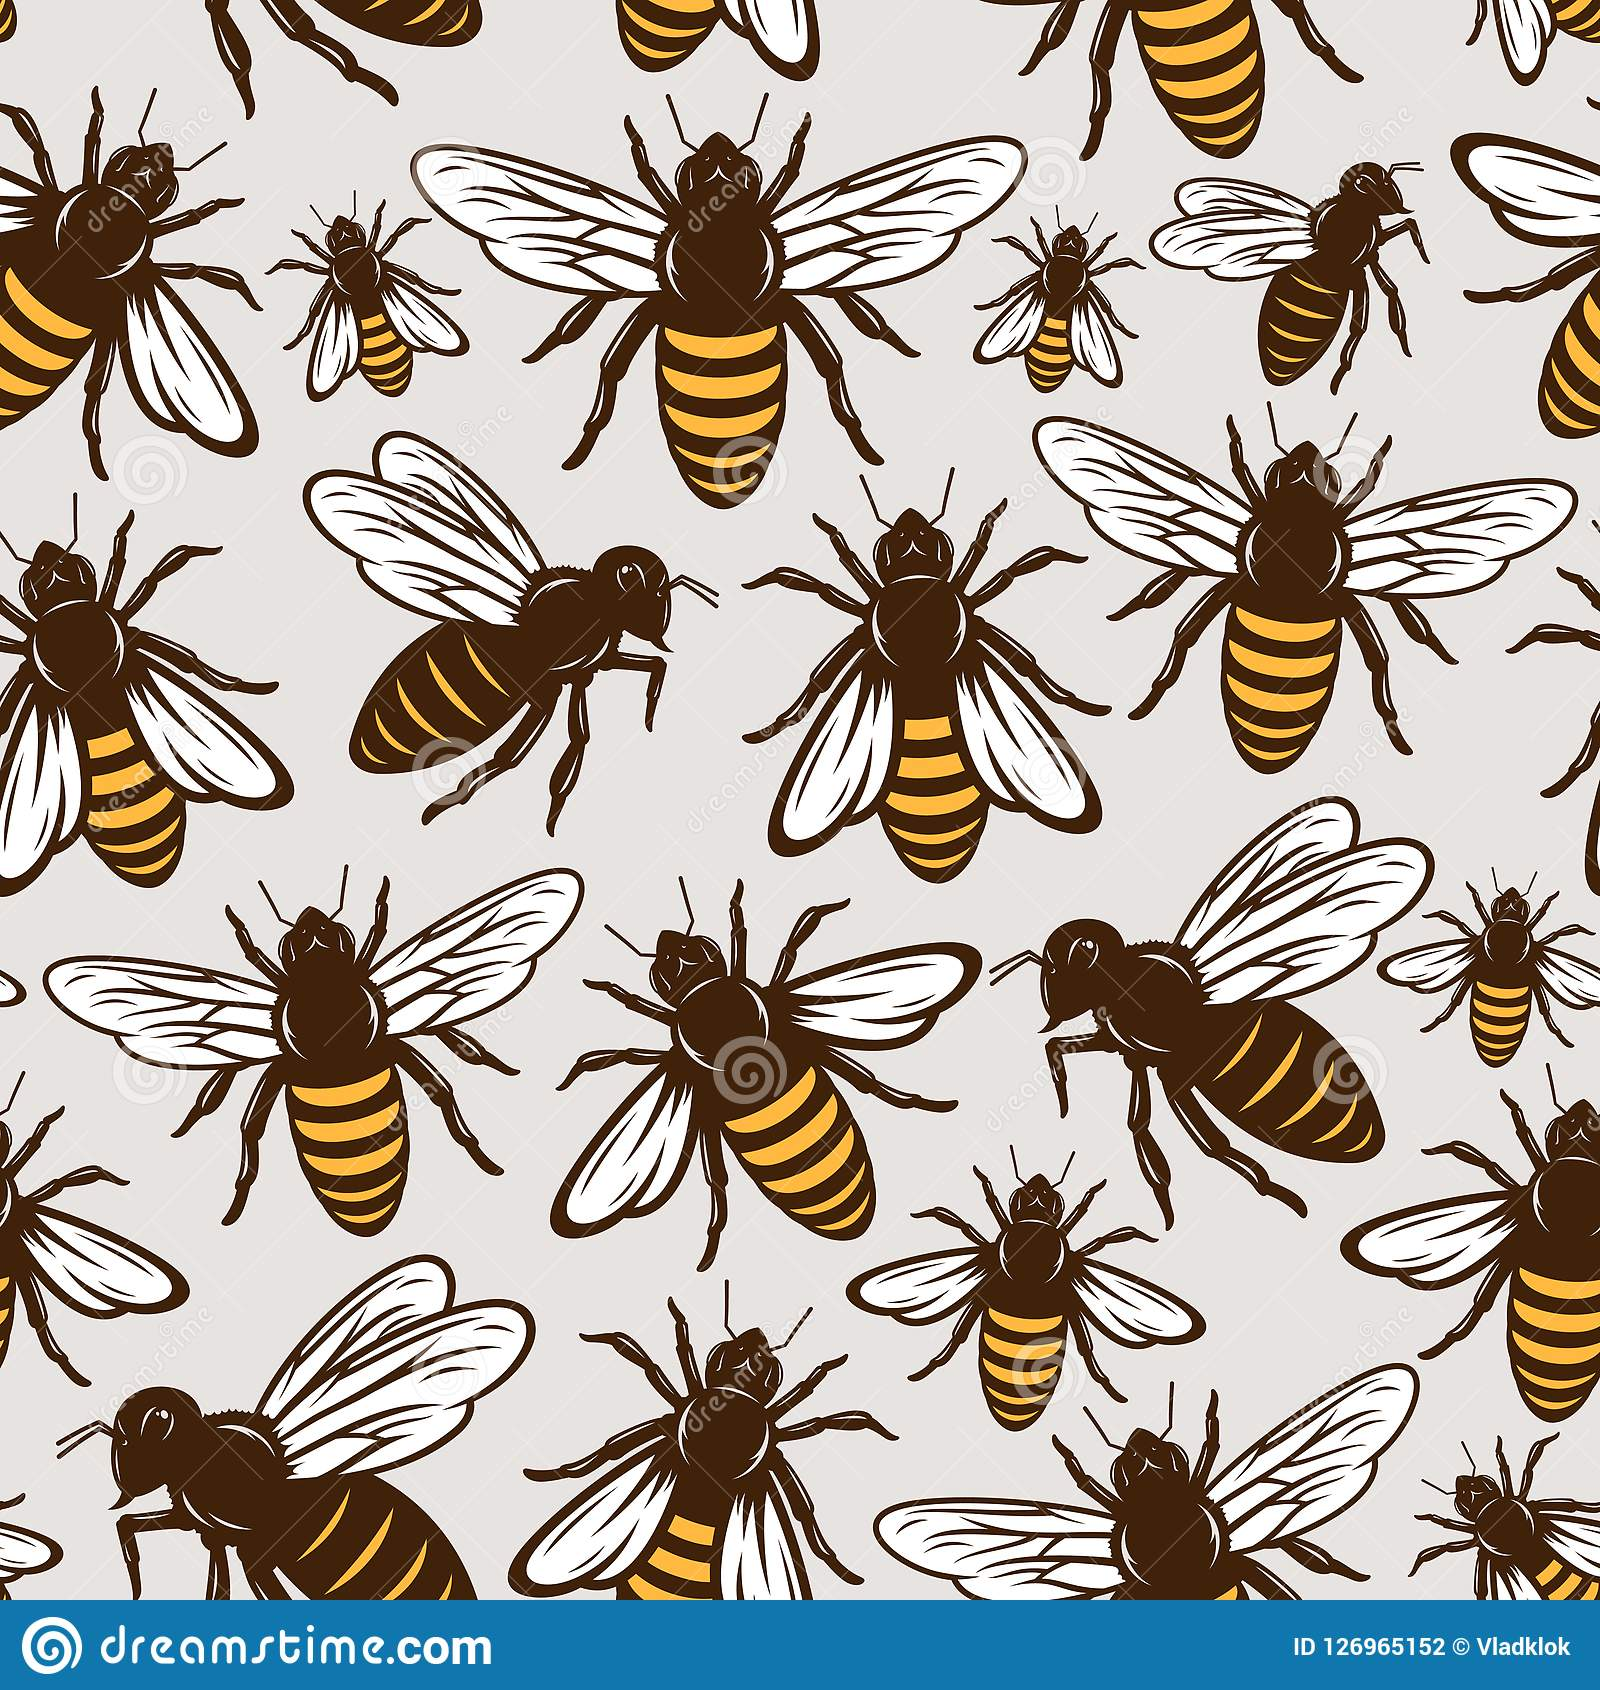 Vector honey bee seamless pattern or background